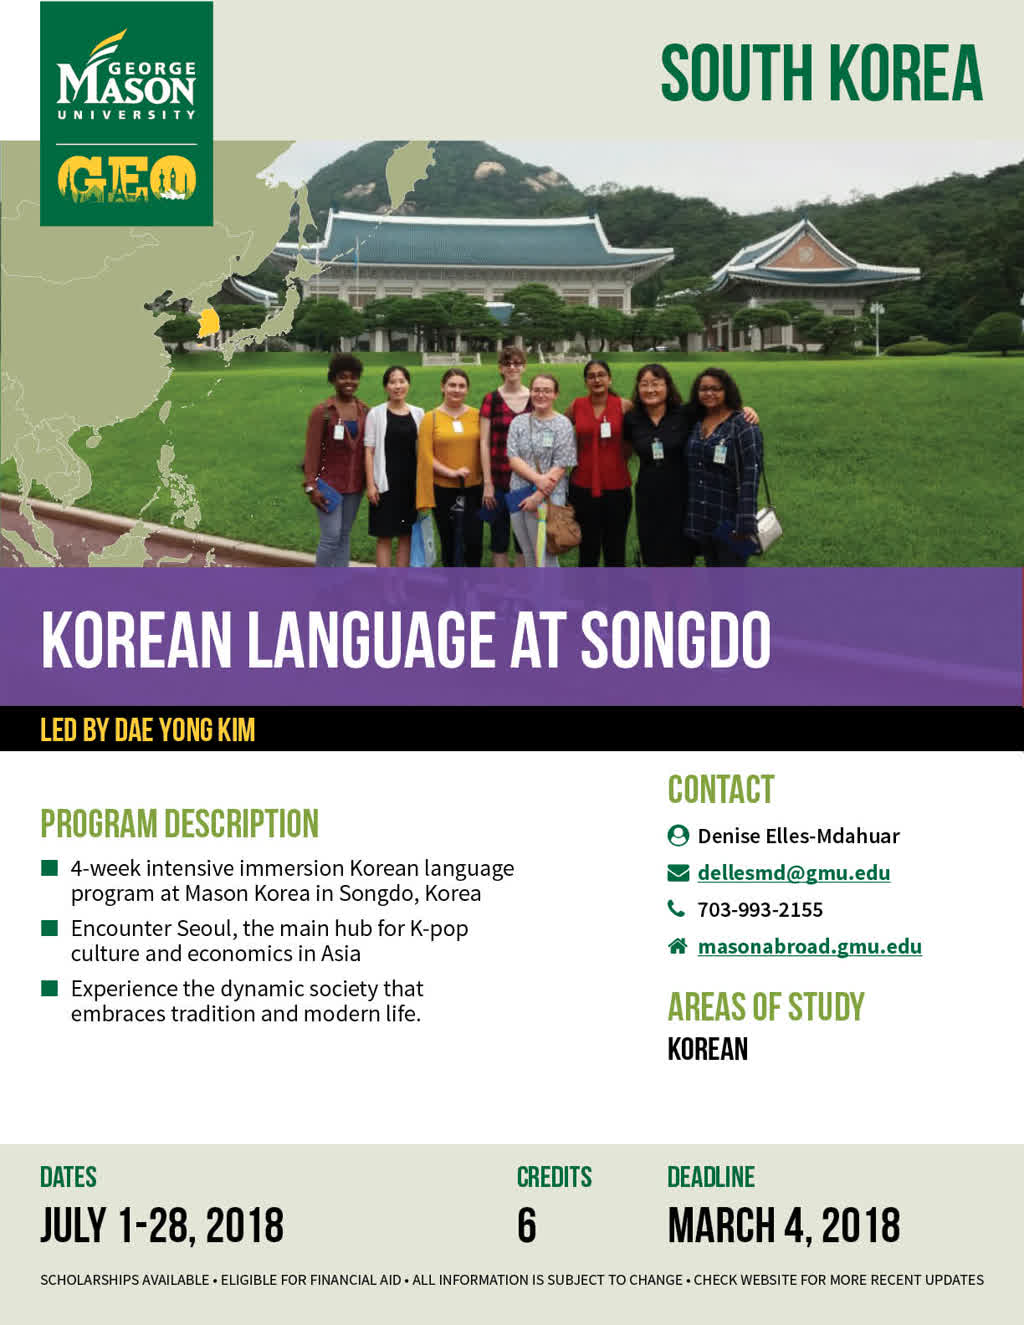 Information regarding Korean Language at Songdo is as follows Create Your Own Tags: is #MasonAbroad #StudyAbroad and Start date (when you would like your content to be posted) is December 14 2017 and End Date  (when you would like your content to be removed from the screens) is March 04 2018 and File is Browse and Name is Denise Elles-Mdahuar and Group Name is Global Education Office and Email is goabroad@gmu.edu and File Name is South-Korea-Language_comp.jpg and Name of Ad/Event is Korean Language at Songdo and Affiliation is Mason Department and Panel for your ad to be displayed is Side and